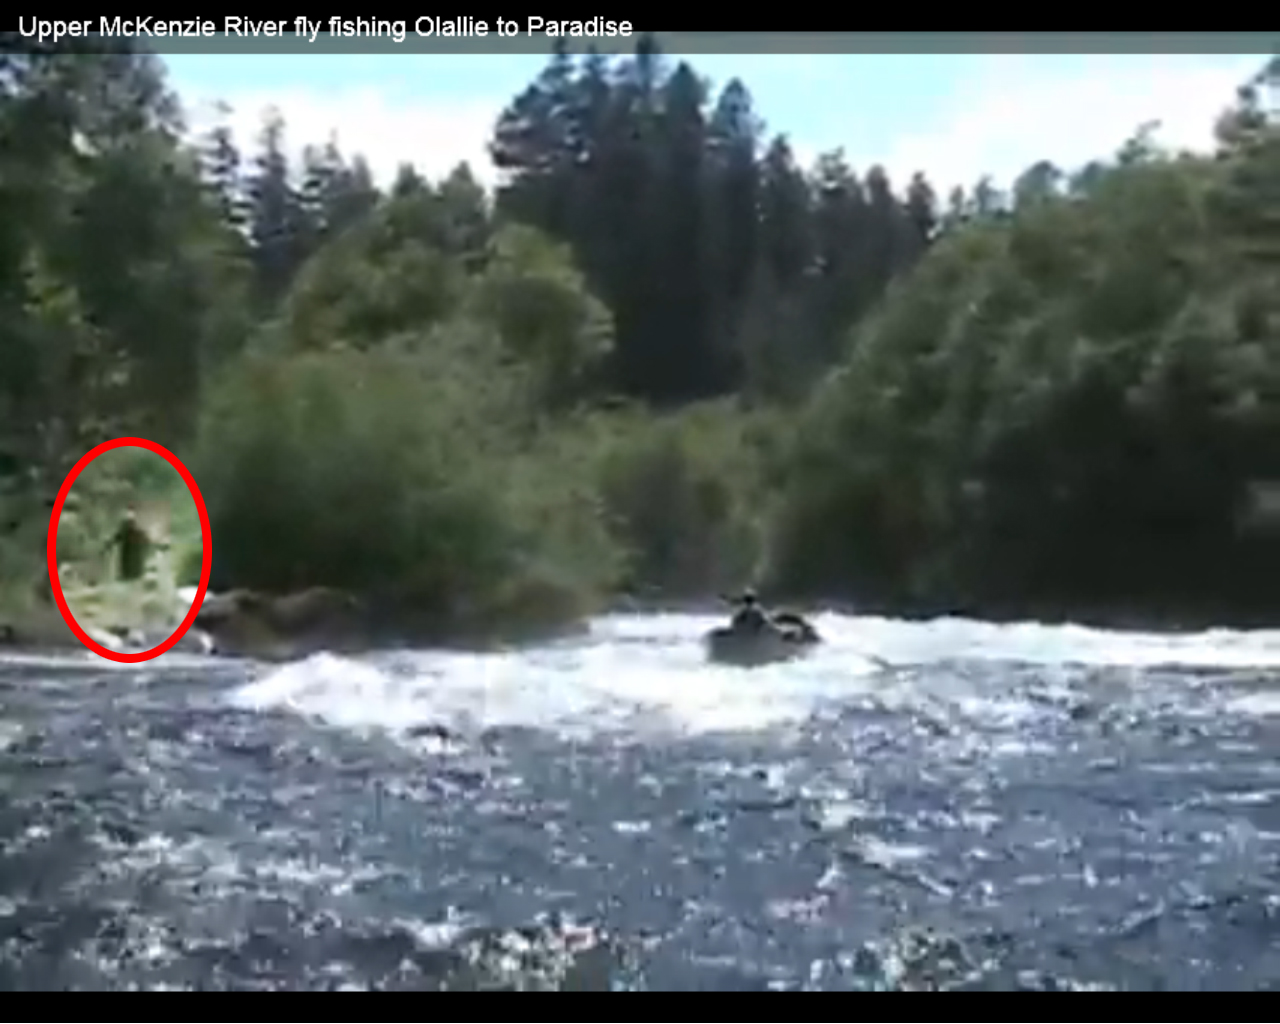 Bigfoot Video from 2008 McKenzie Fishing Trip Surfaces